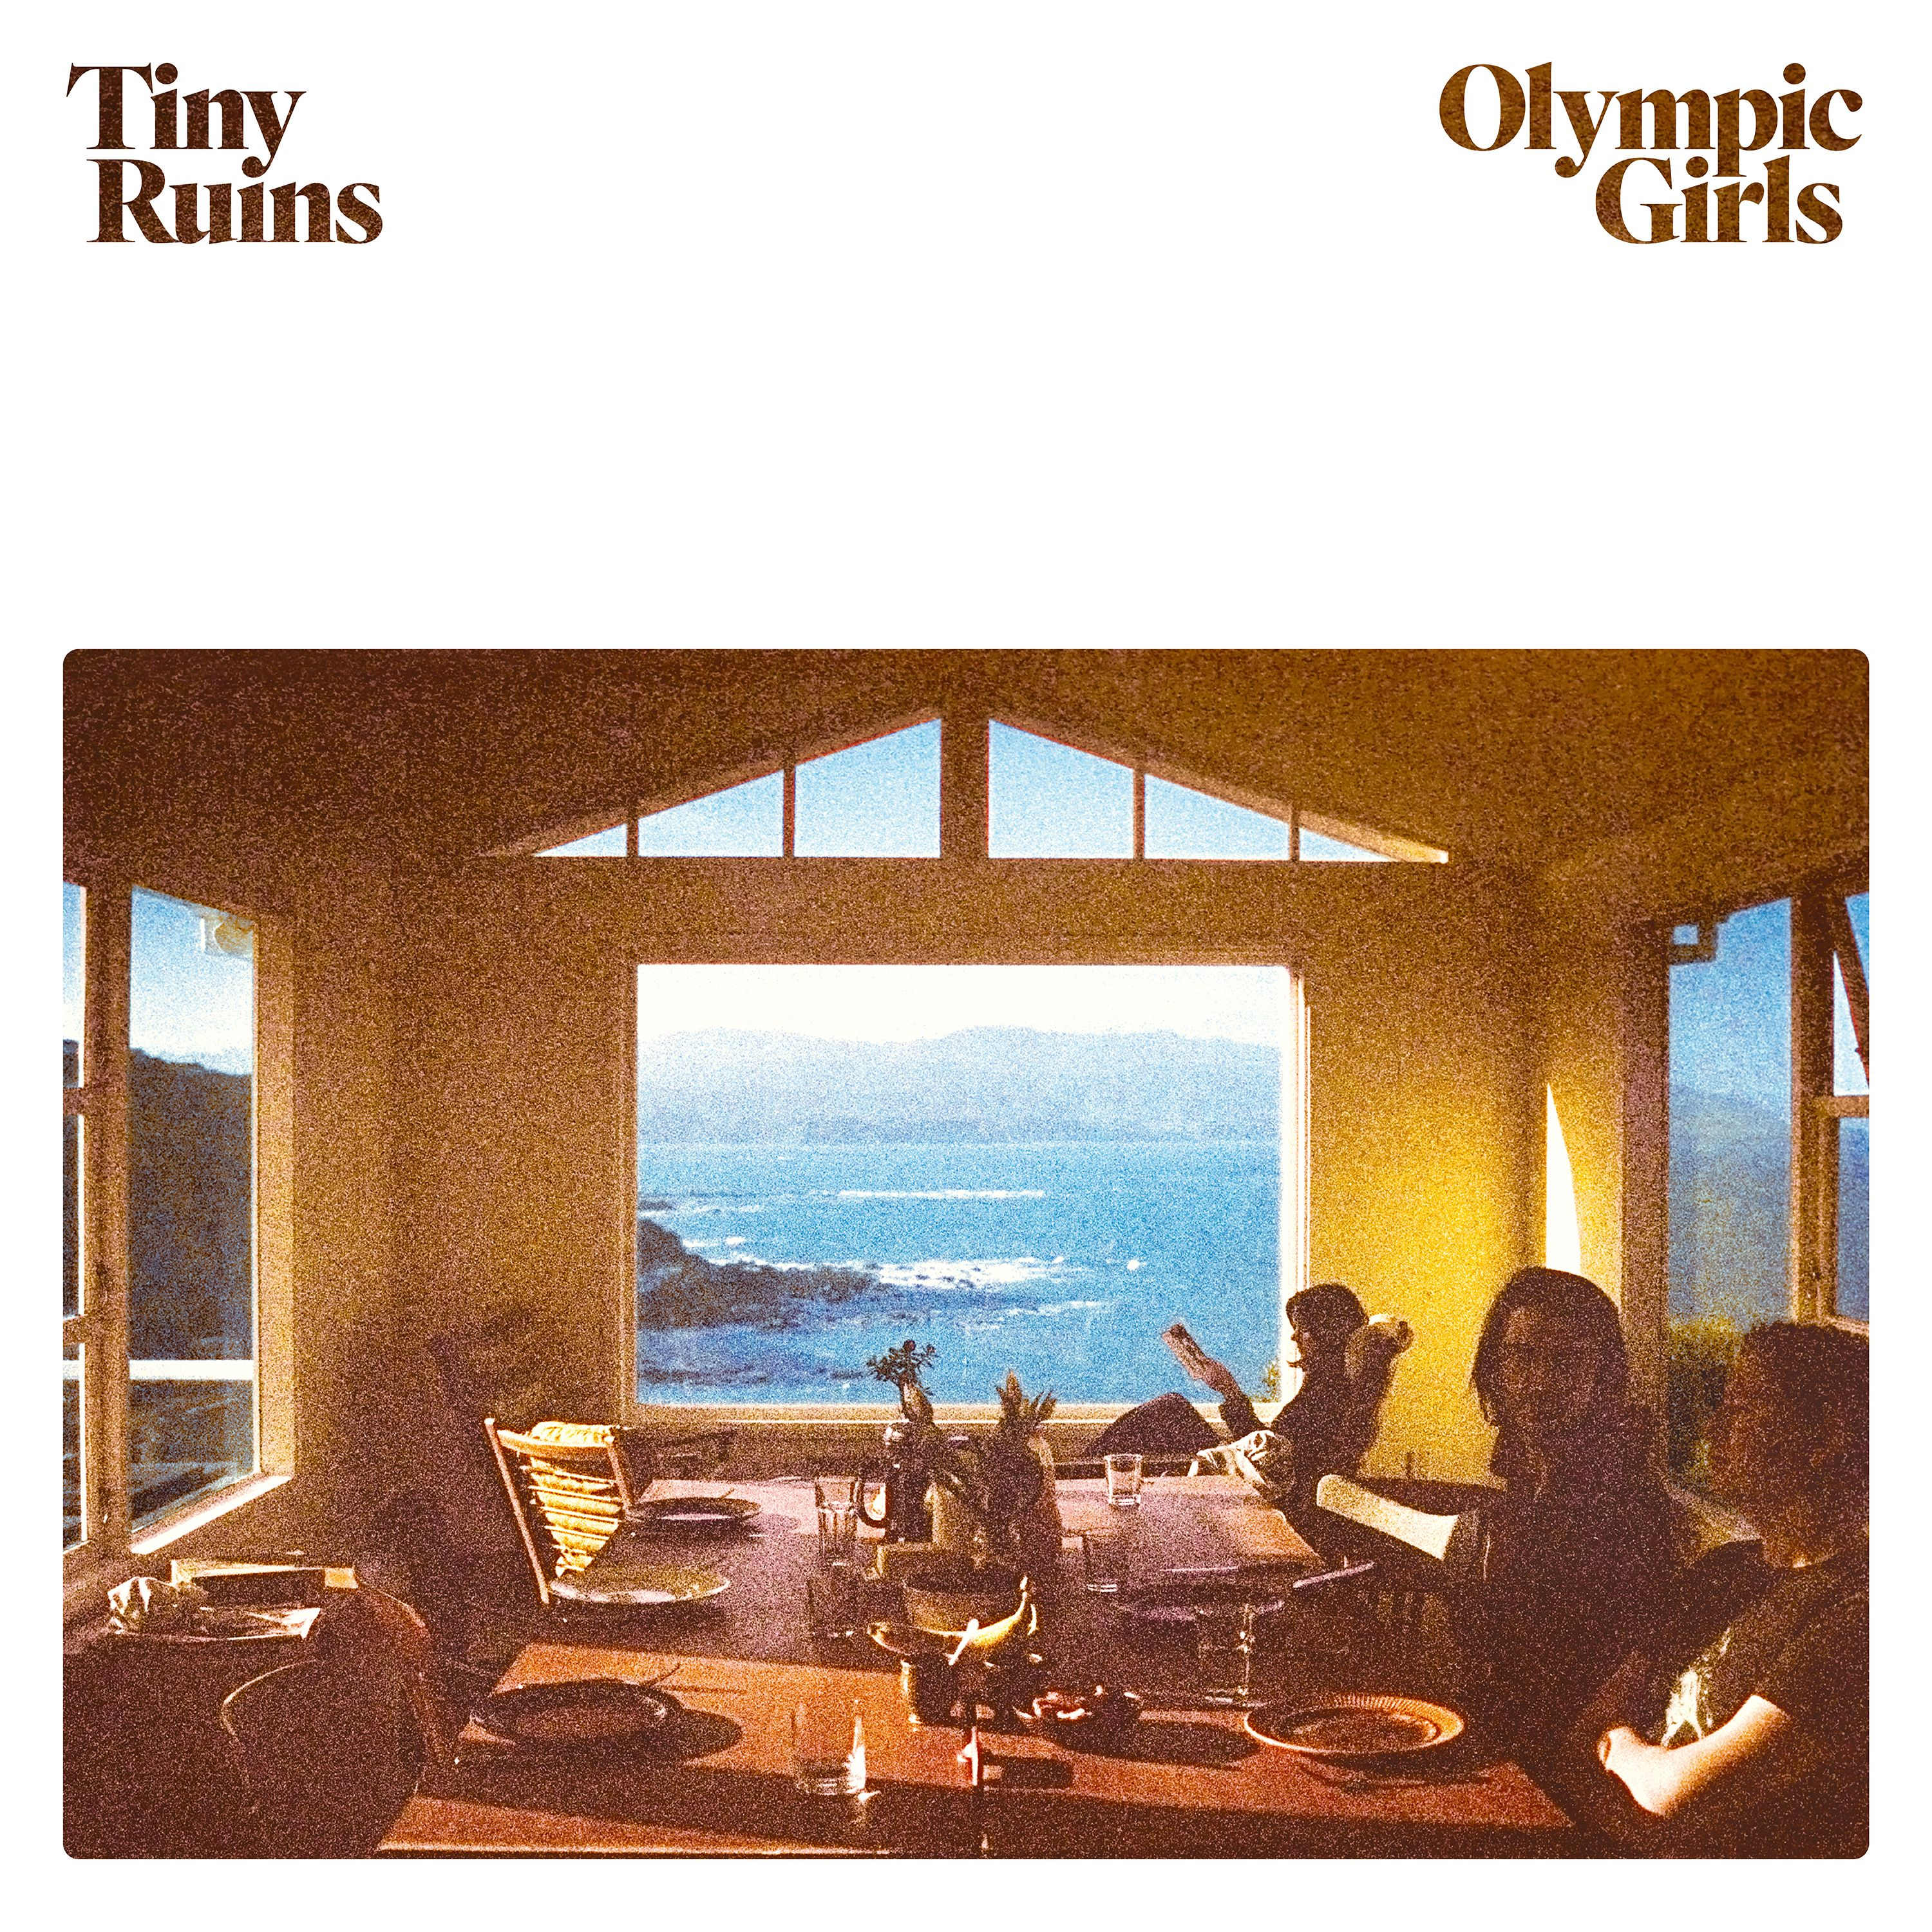 Tiny Ruins - Olympic Girls album cover